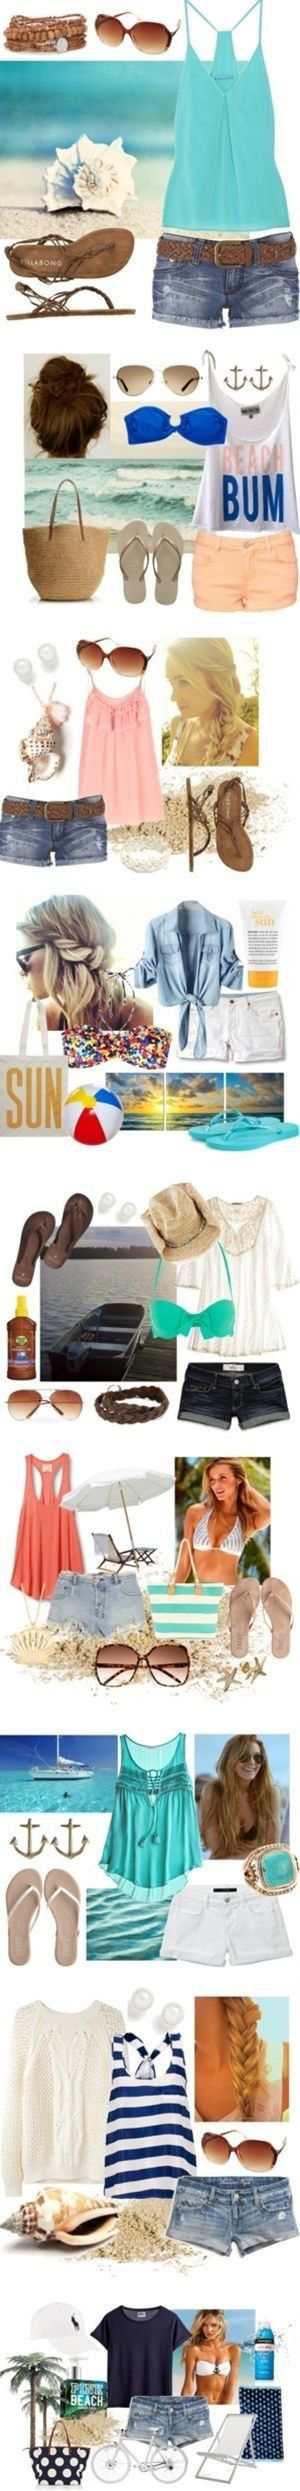 Summer outfits!